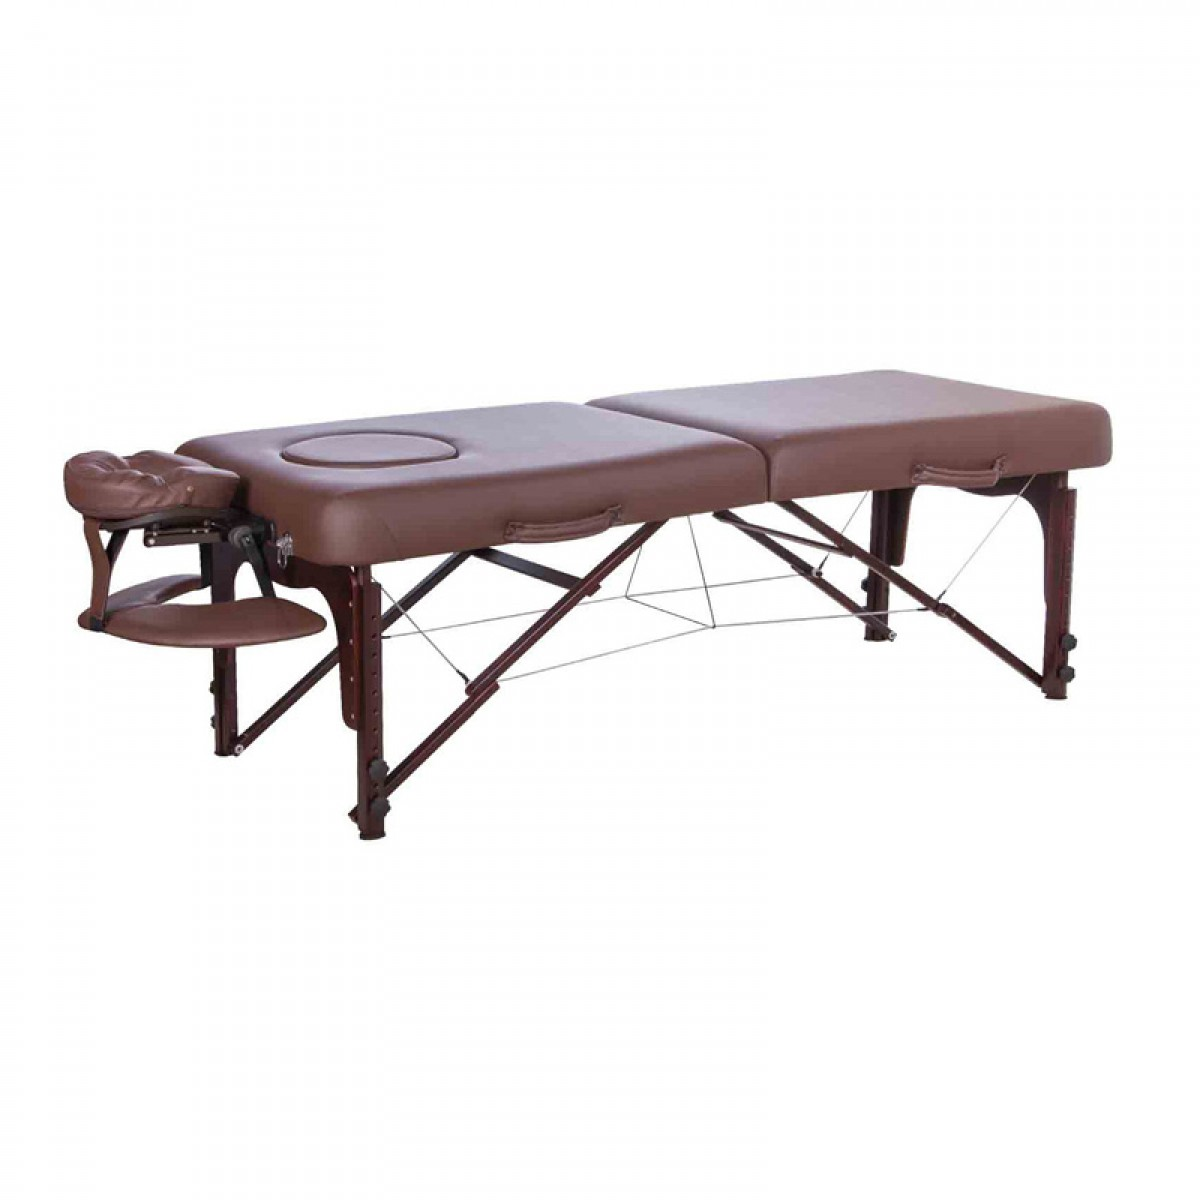 Lightweight Wooden massage table 3-Segment folding massage bed adjustable spa massage table